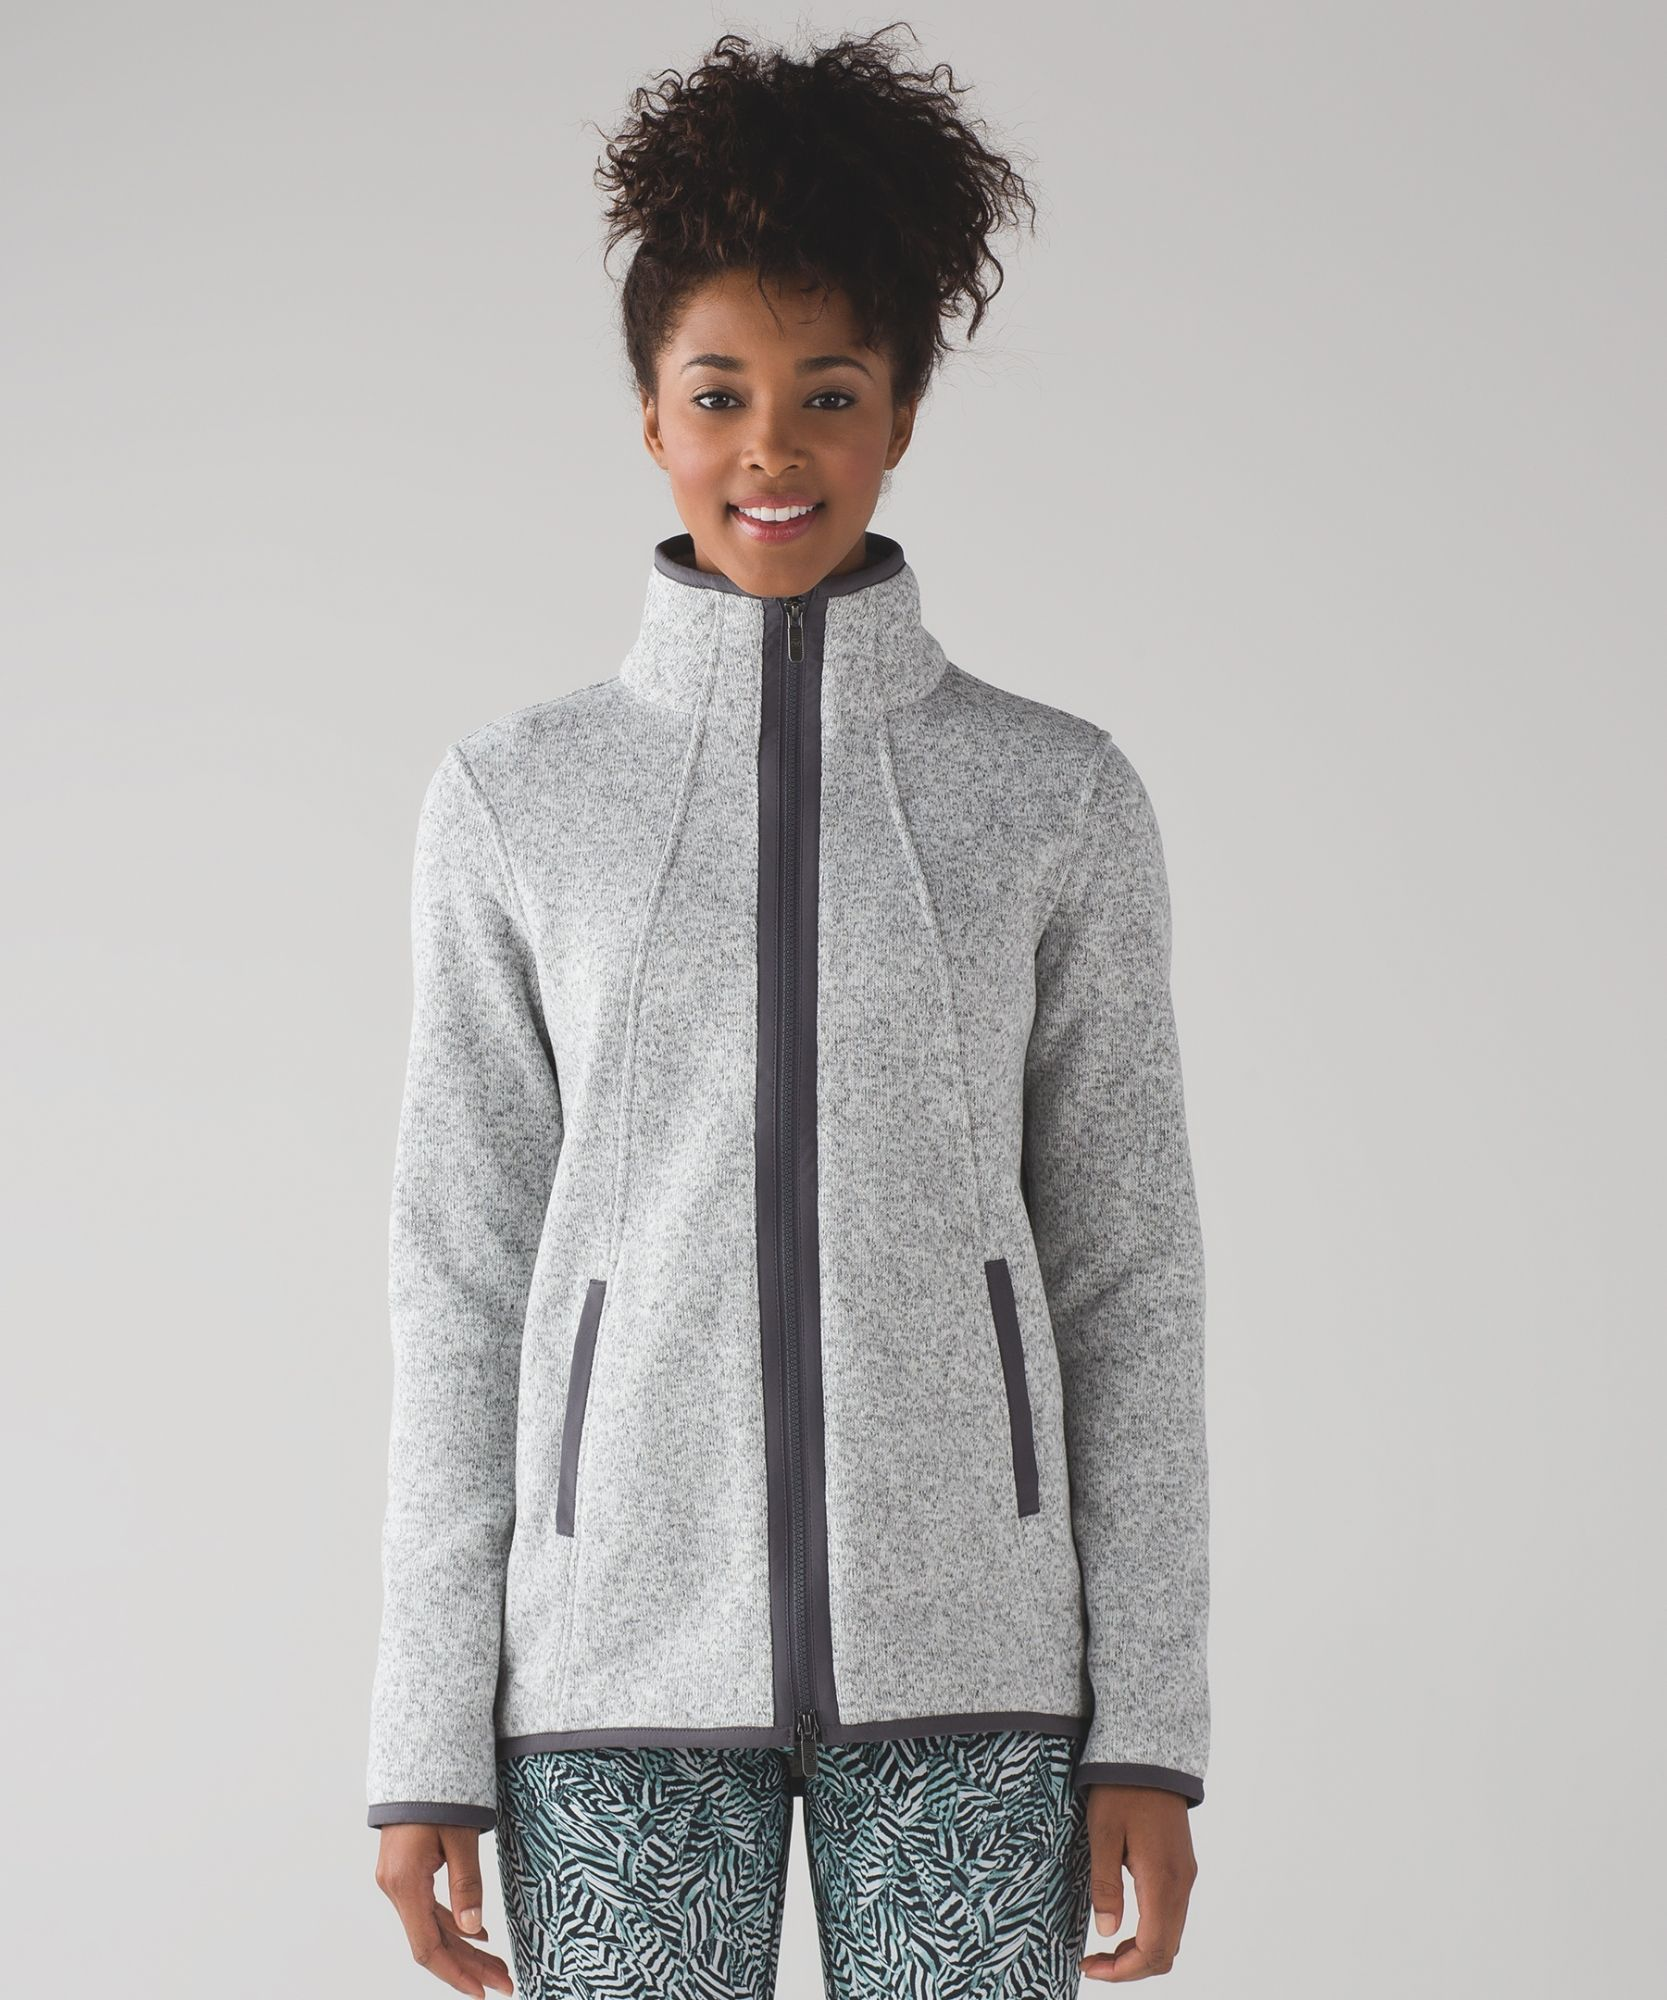 IT'S FLEECING COLD JACKET HEATHERED WHITE/DARK CARBON NWT